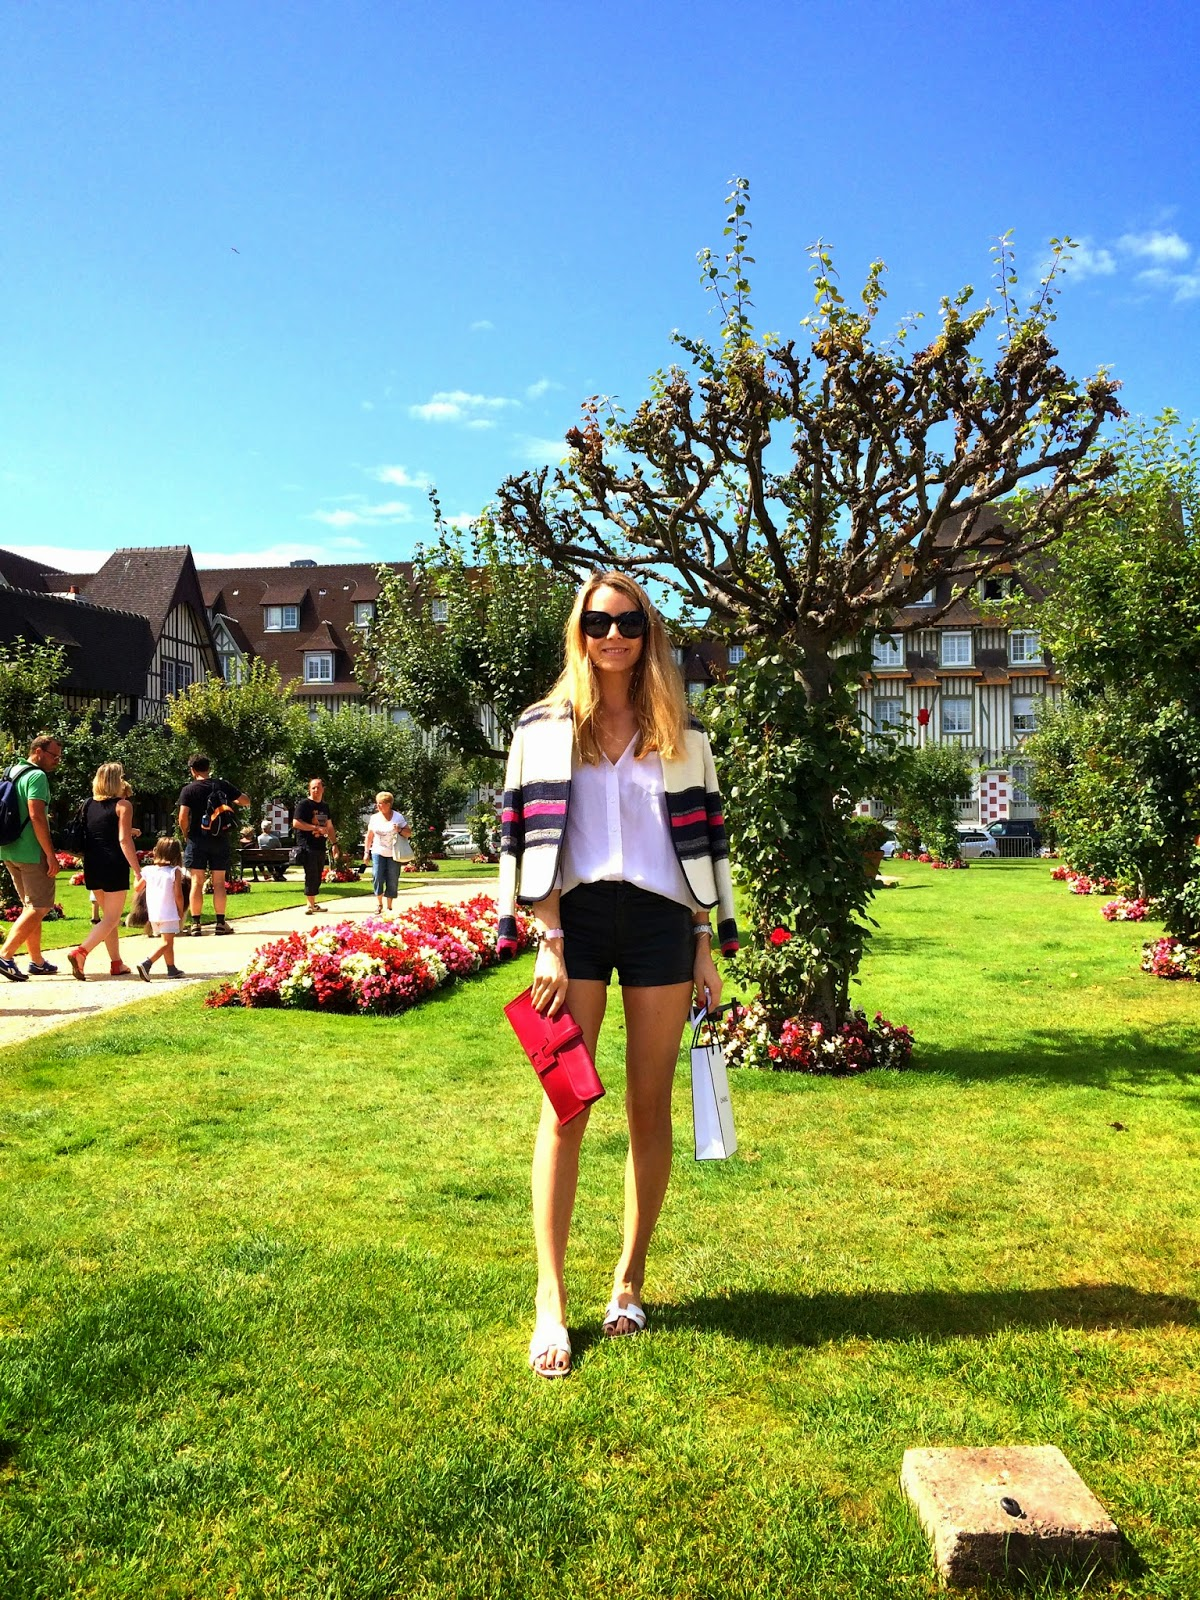 deauville, chanel, hermès, travel diary, seafood, restaurant, chic, streetstyle, maison michel